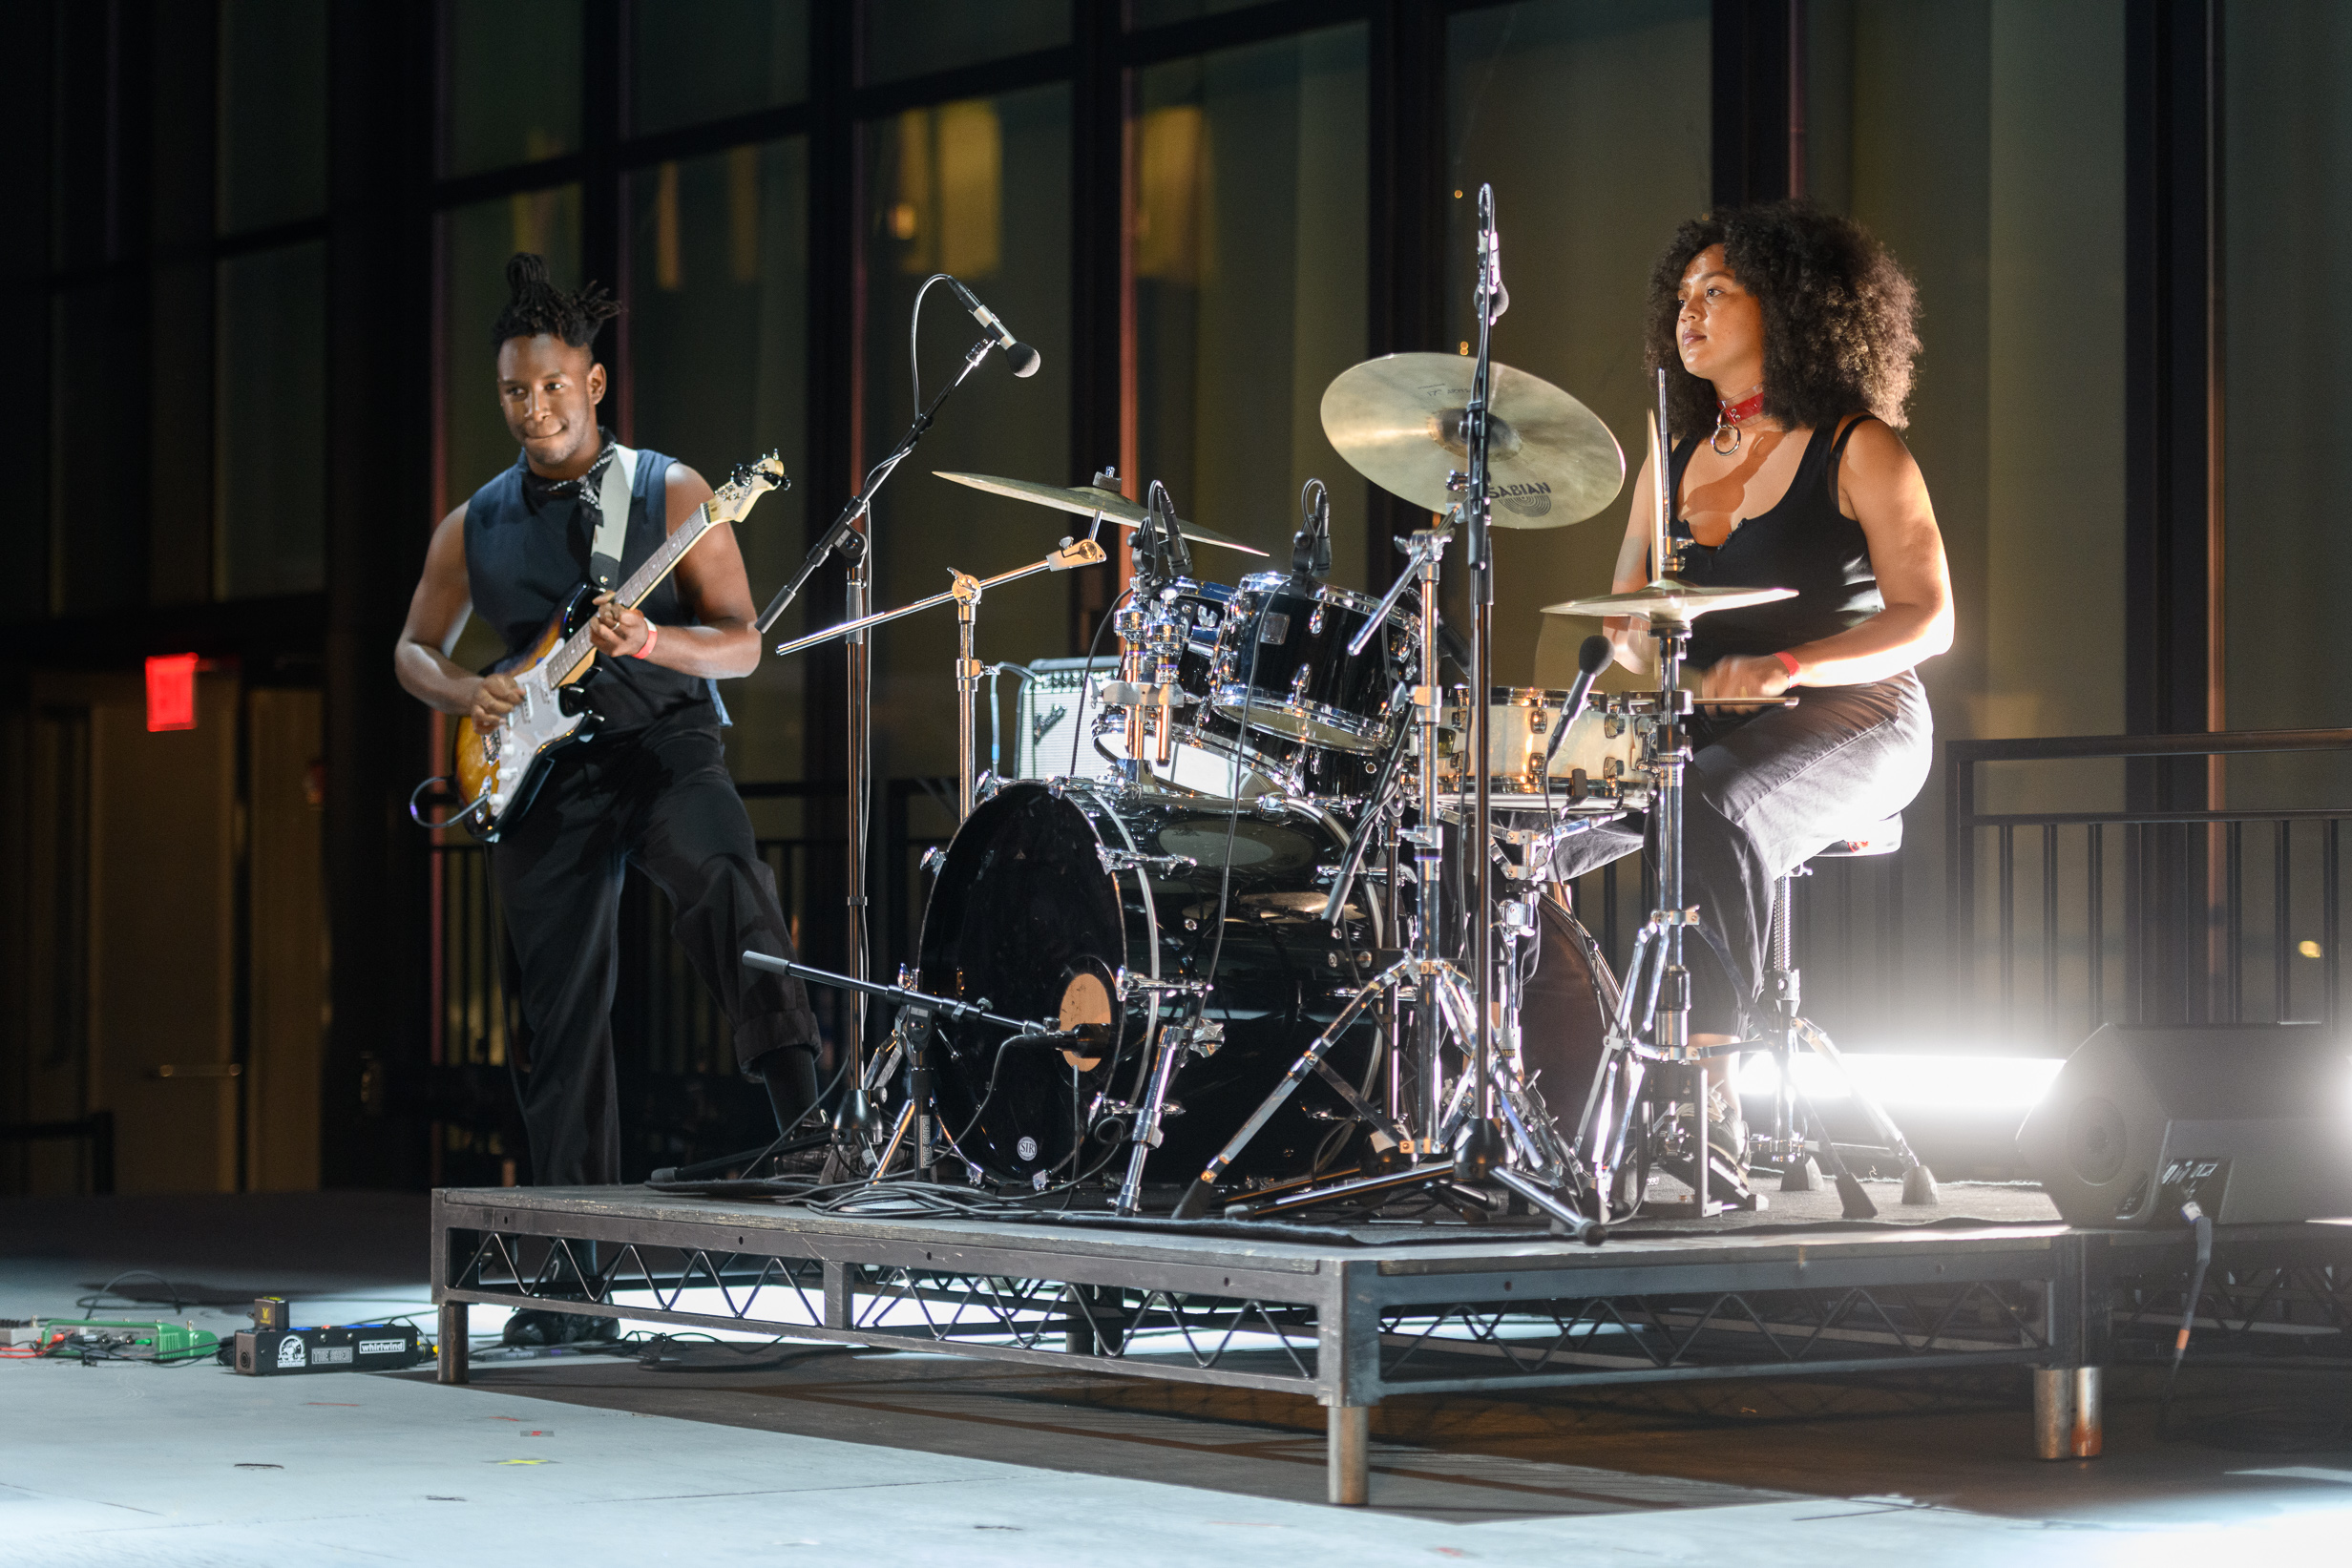 The guitarist, Sean, and drummer, Savannah on stage.